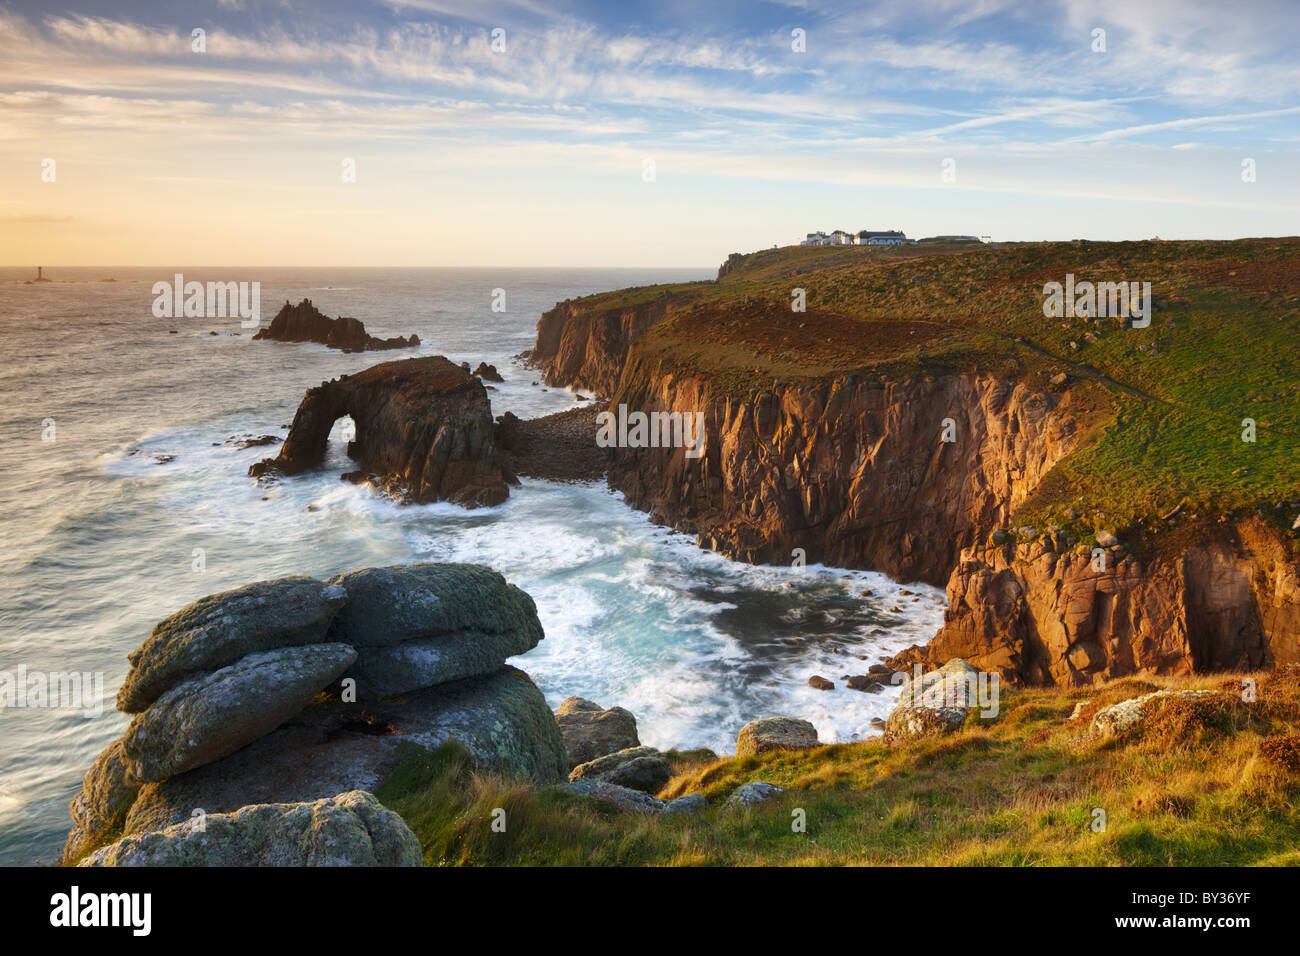 Dramatic coastline along the Penwith Peninsula at Land's End the most Westerly point of England - Stock Image